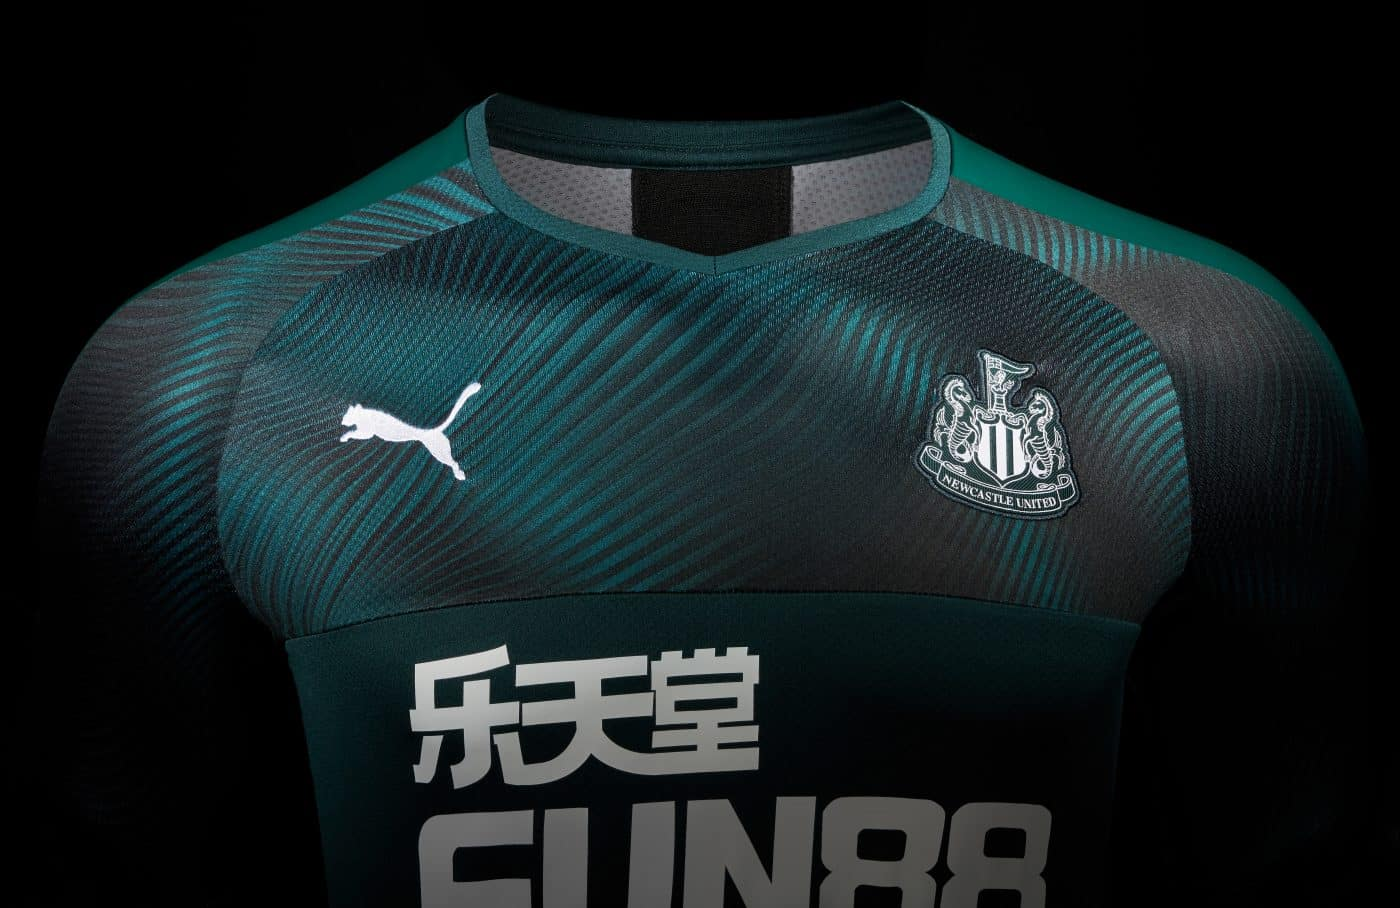 maillot-exterieur-newcastle-united-2019-2020-puma-1